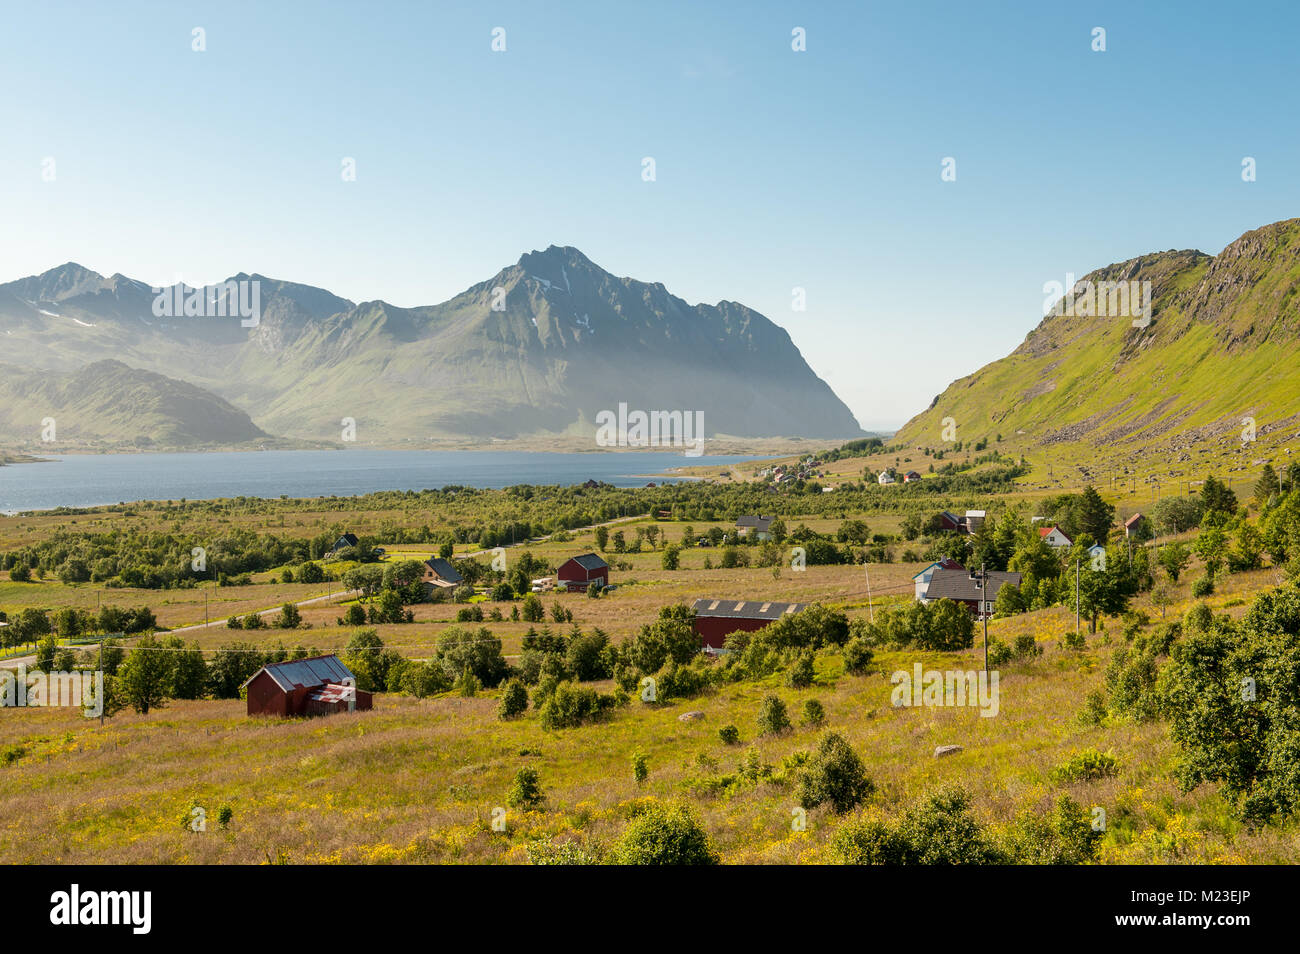 Rural summer landscape on Lofoten islands in northern Norway. Lofoten is a popular tourist destination. - Stock Image